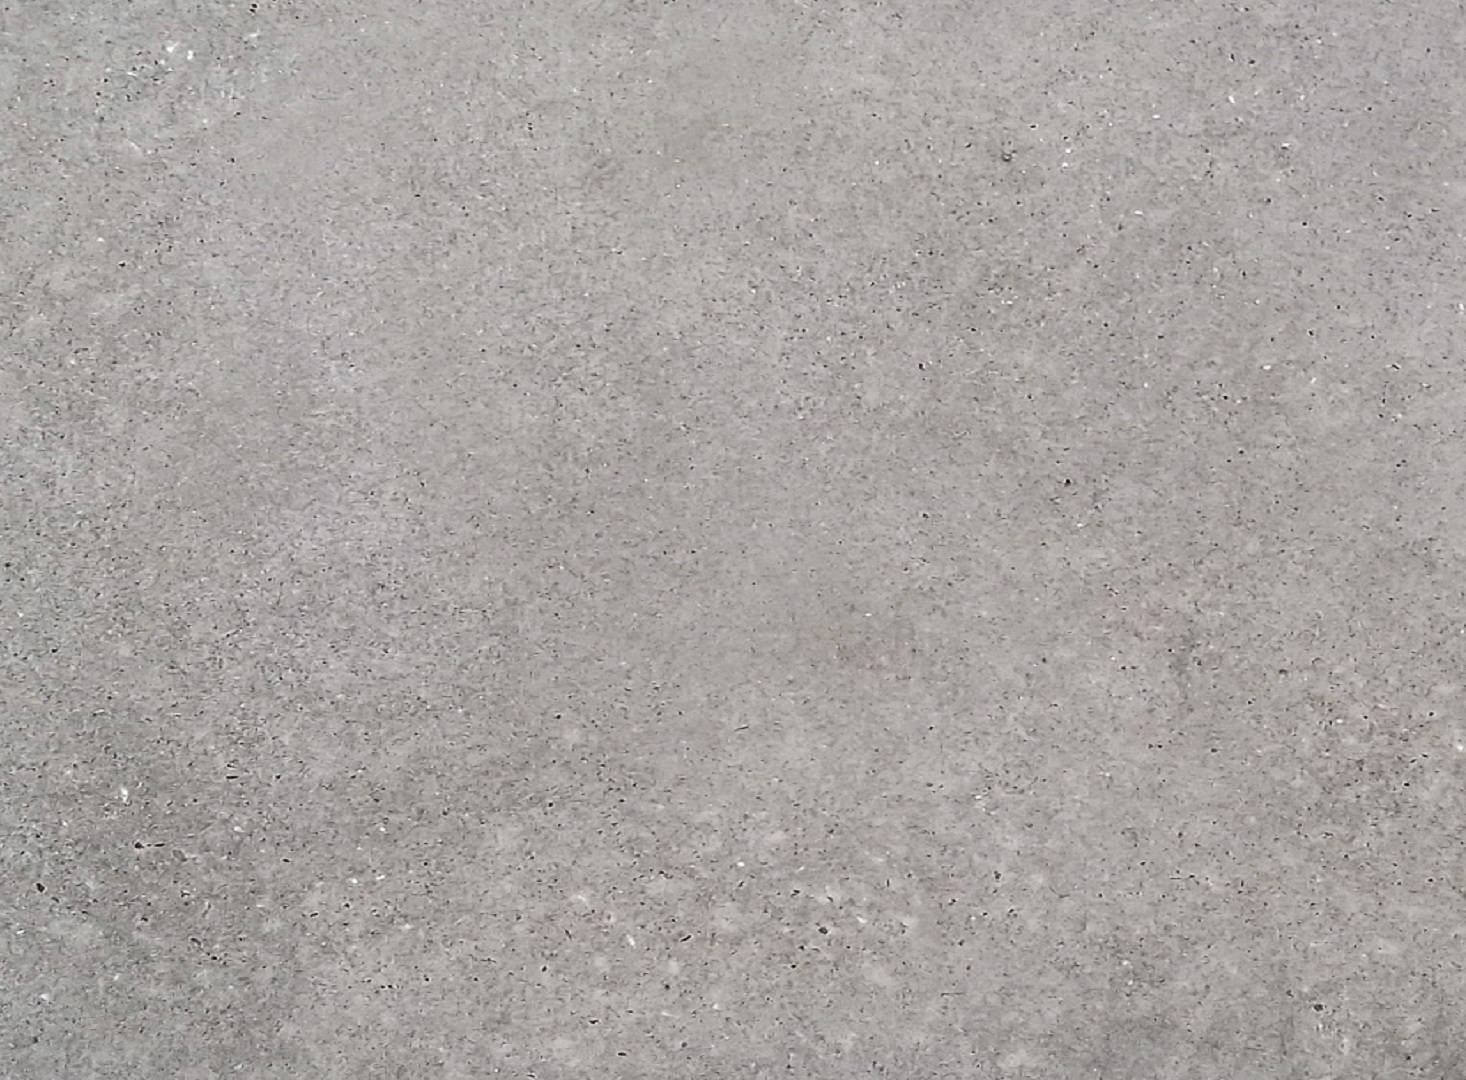 pin polished concrete texture on pinterest